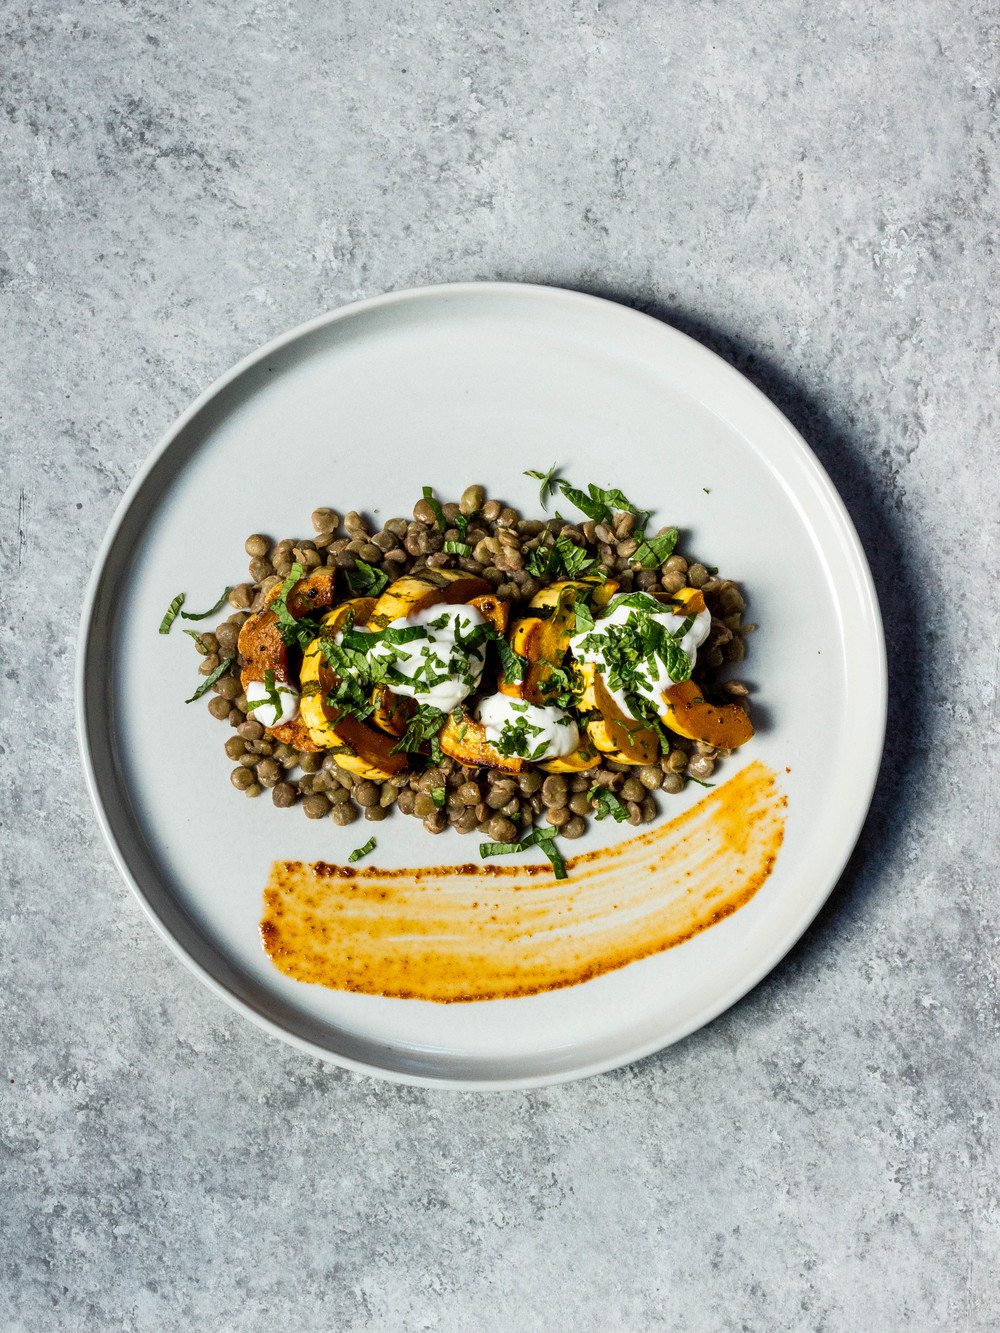 Harissa-Cumin Roasted Delicata Squash over Lentils, Yogurt + Mint